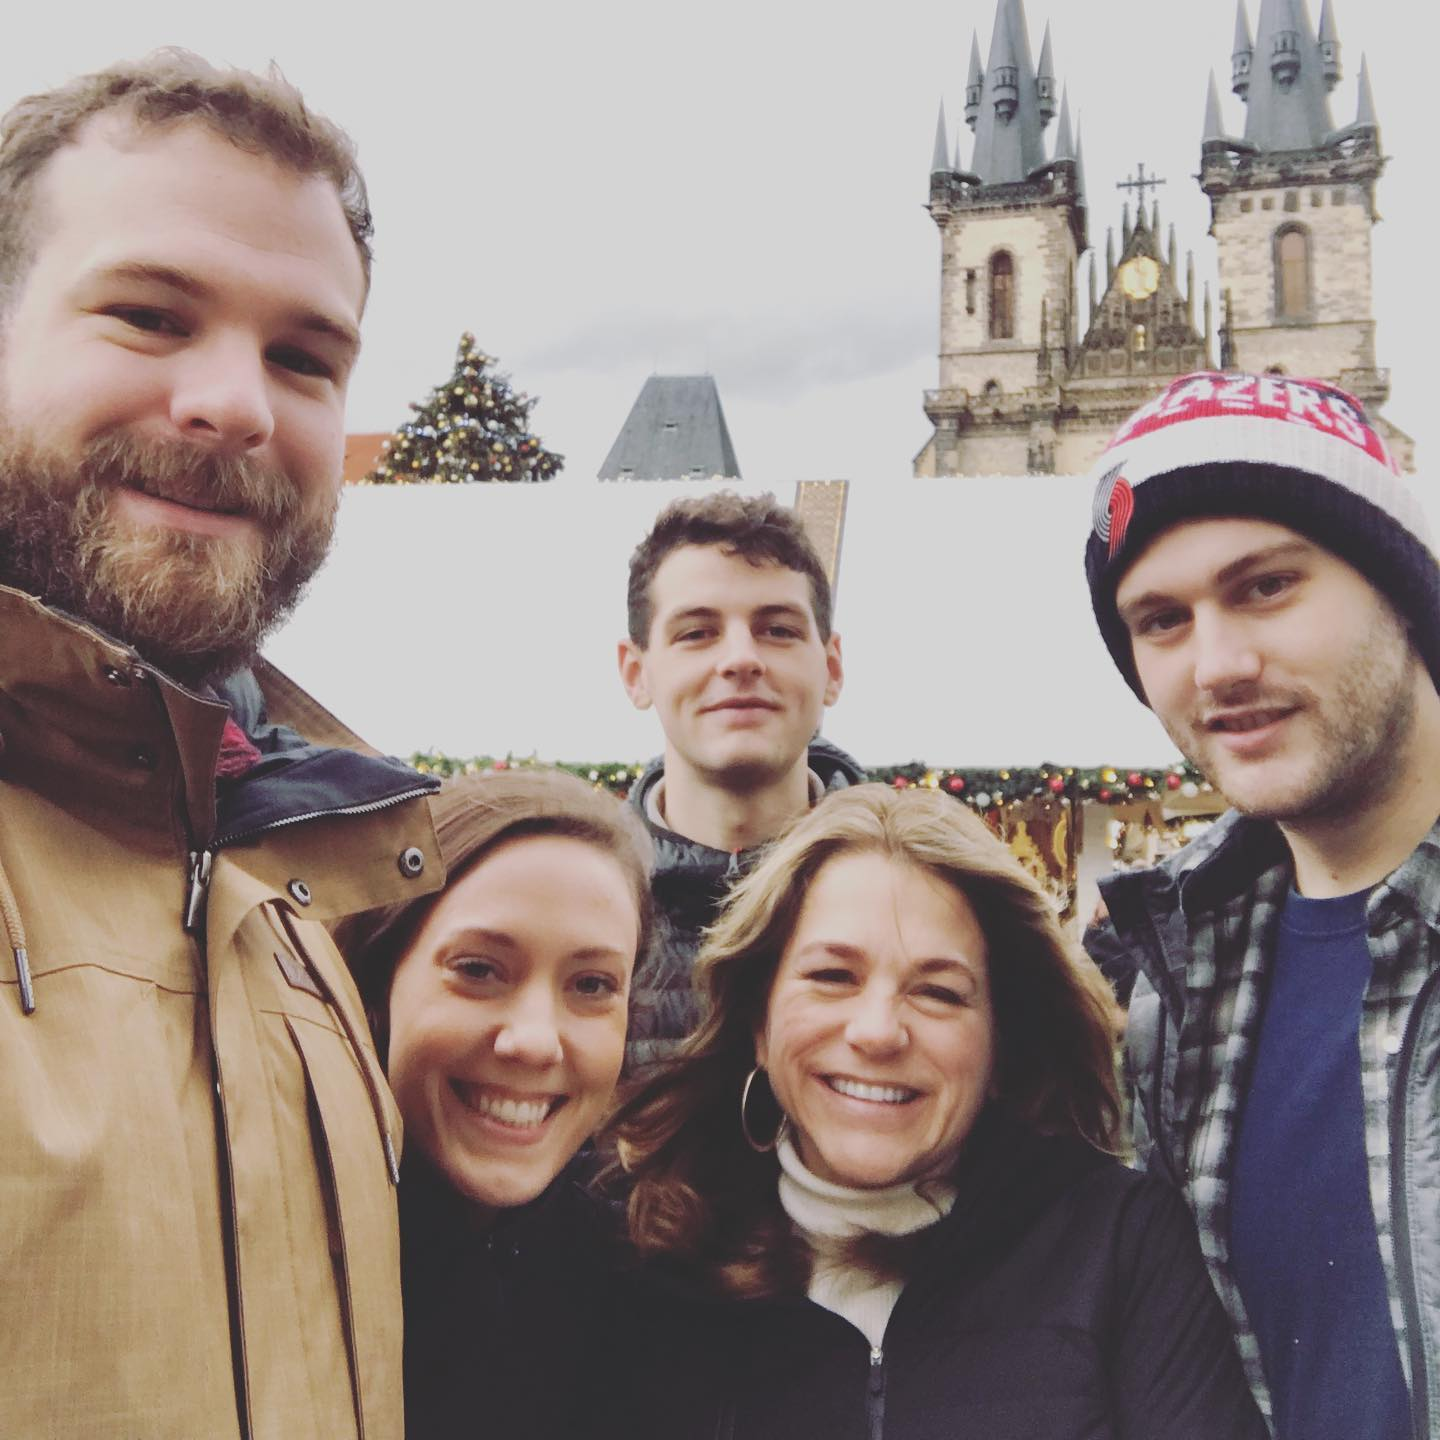 Aimee: a family European adventure - DECEMBER 2018As a working mom of three nearly grown boys (and a new daughter-in-law) I was dreaming of a special trip with all of us, but it seemed so overwhelming to plan and coordinate. A friend gave me Mary's contact information and spoke so highly of her that I had to call. I explained what I was hoping to accomplish, and Mary took control from that moment. I felt like the weight of the world was lifted off of my shoulders and anxiety turned to excitement. Mary exceeded every expectation I could have imagined. She carefully planned each segment of our 2 week trip and was always sensitive to my budget. She reserved restaurants that we never would have found. At one point in Vienna we walked to the front of a 3-hour line and were shown straight to our seats! Our lodging was perfect! She set up food tastings and even a cooking class in Prague with a woman whose family had cooked for the Czar (one of our highlights!) She organized a ski trip (we are not a big skiing family, so it included detailed instructions—another highlight!) It was the perfect blend of scheduled and free time. I will never plan another trip without her—she knows everyone, everywhere, and it really does make a difference!